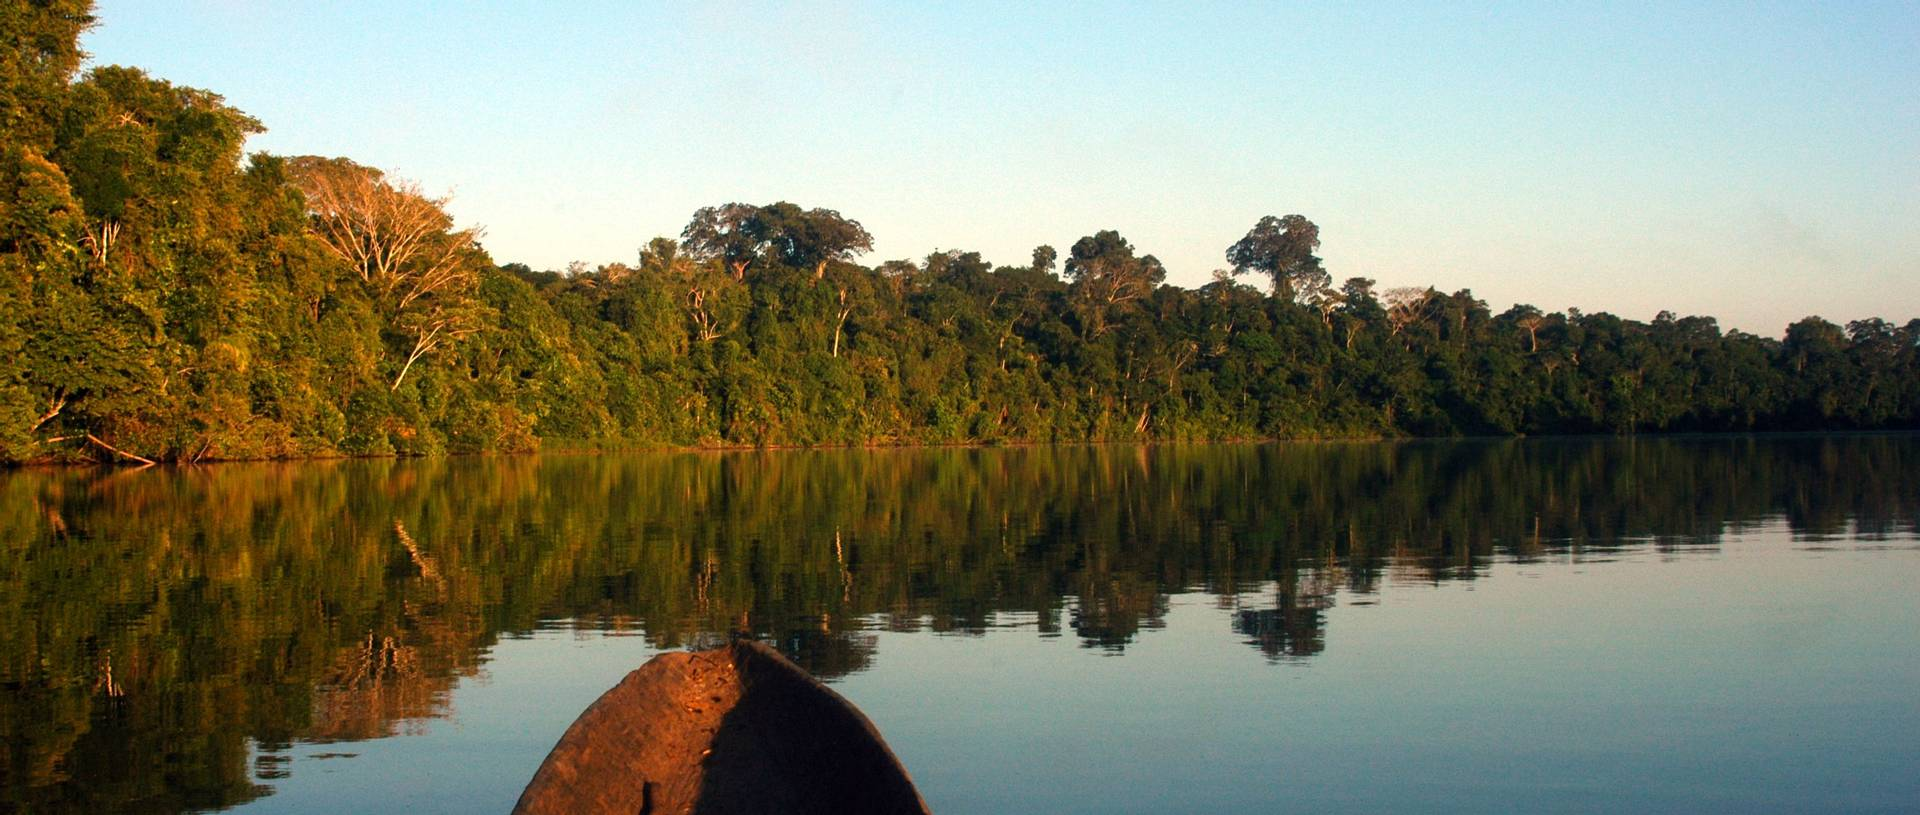 Travelling through the Amazon Jungle by boat